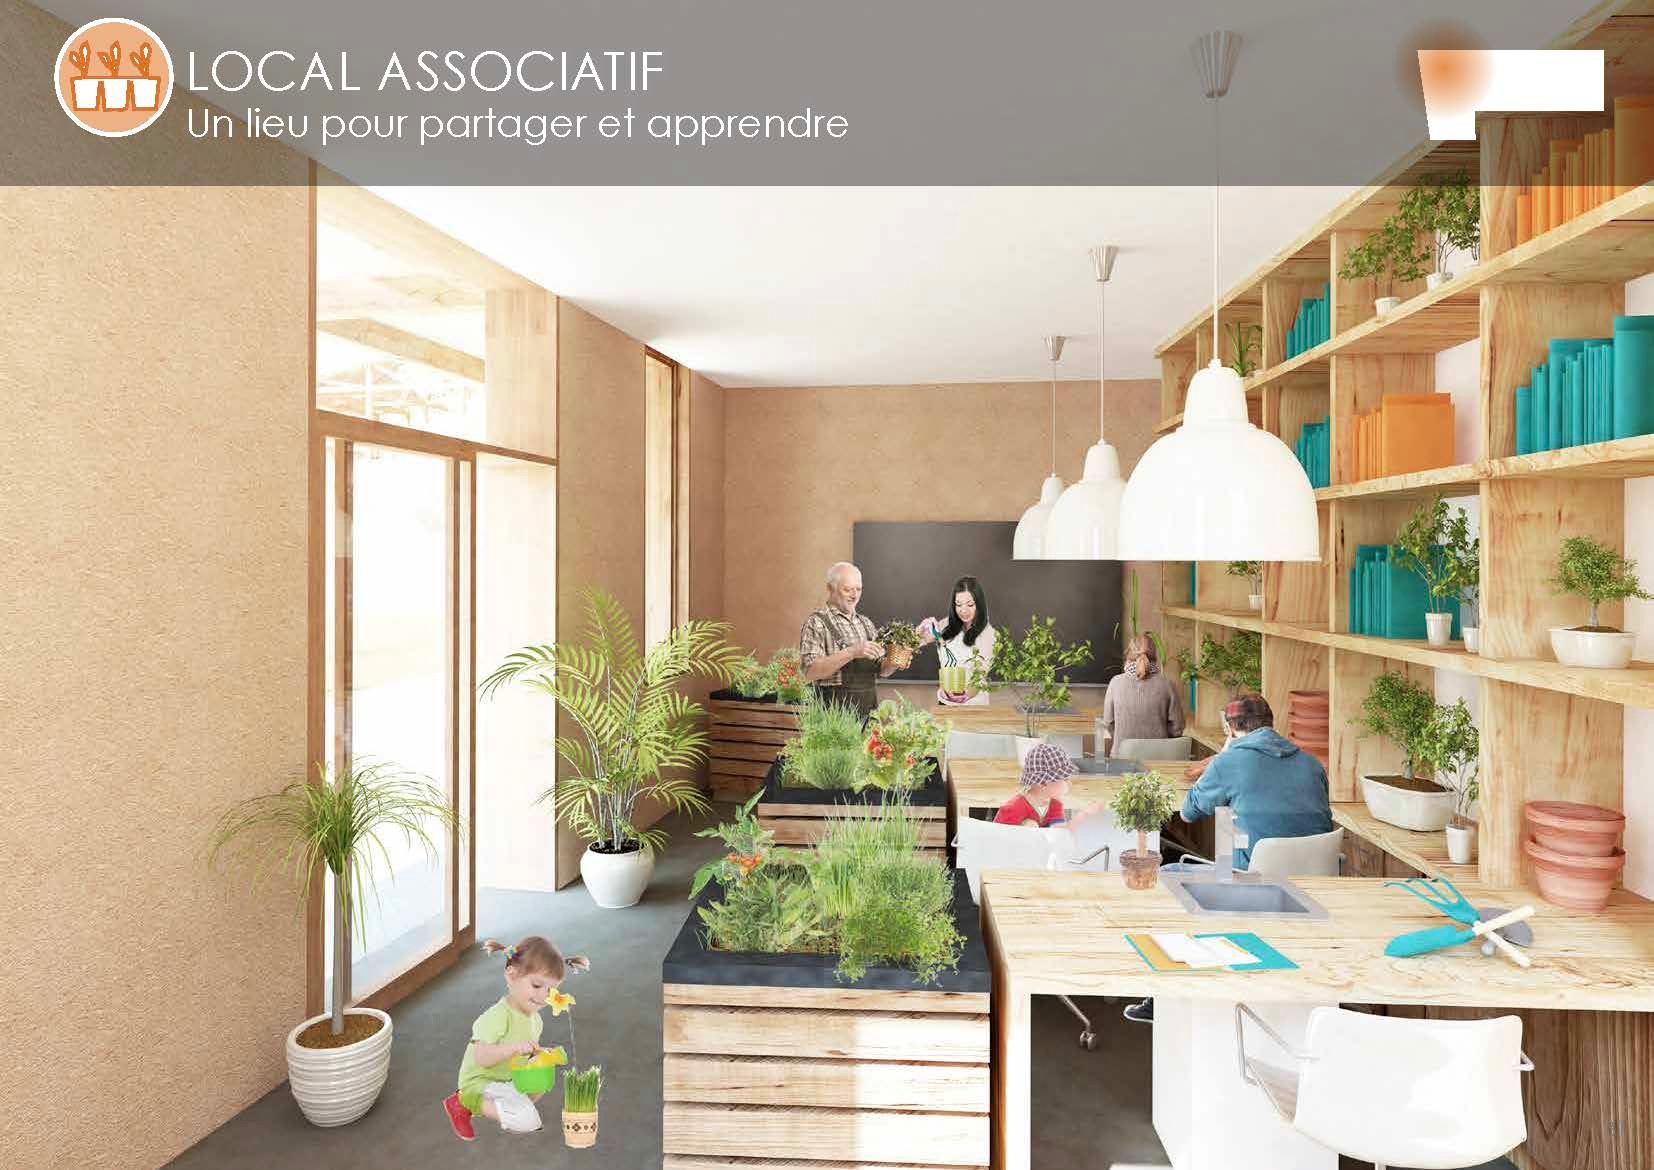 5_Local asso_plan_Page_031.jpg